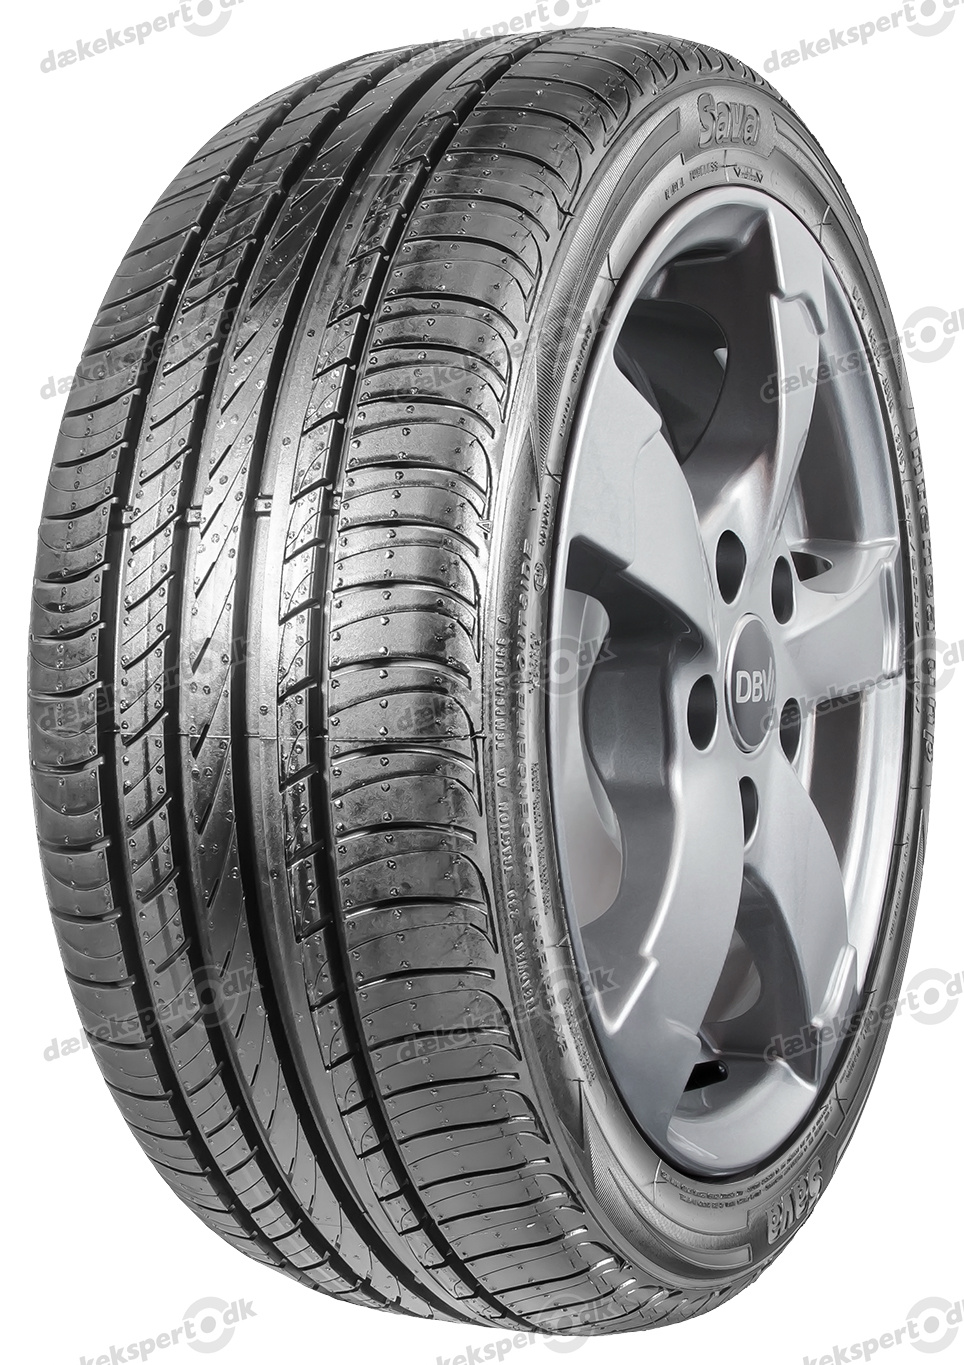 225/55 R16 95W Intensa UHP FP  Intensa UHP FP